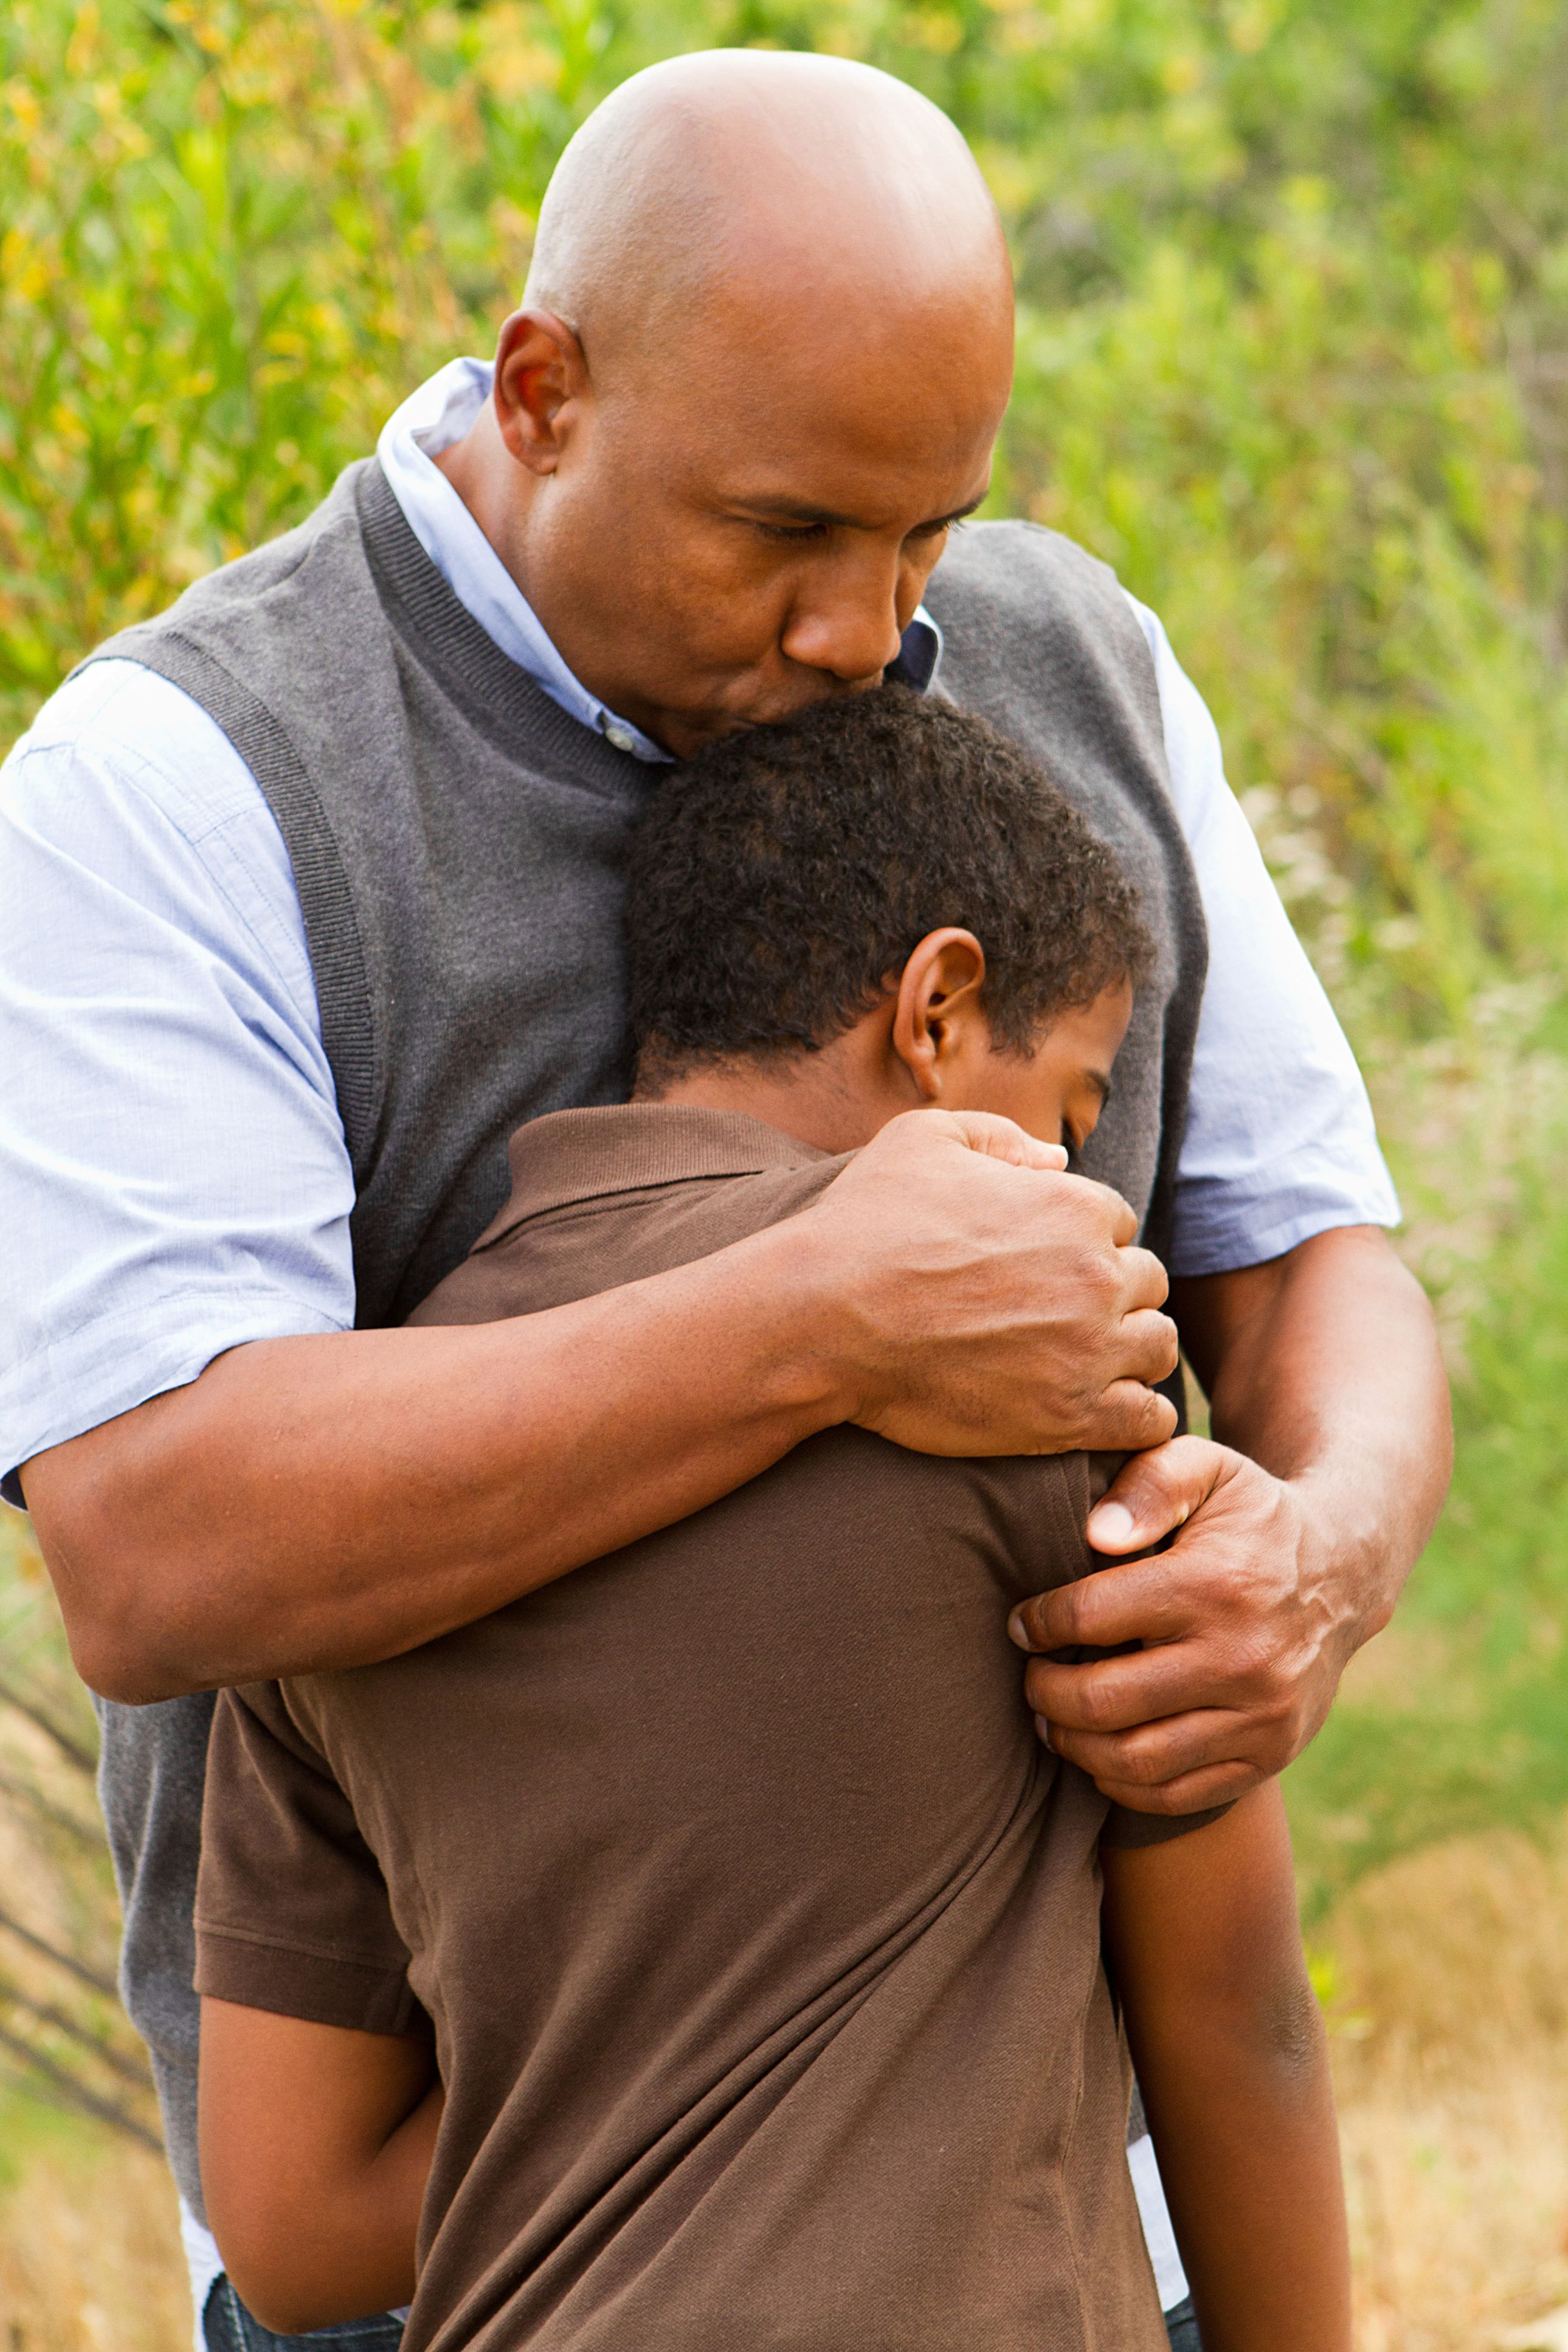 father comforting his son dad tragedy